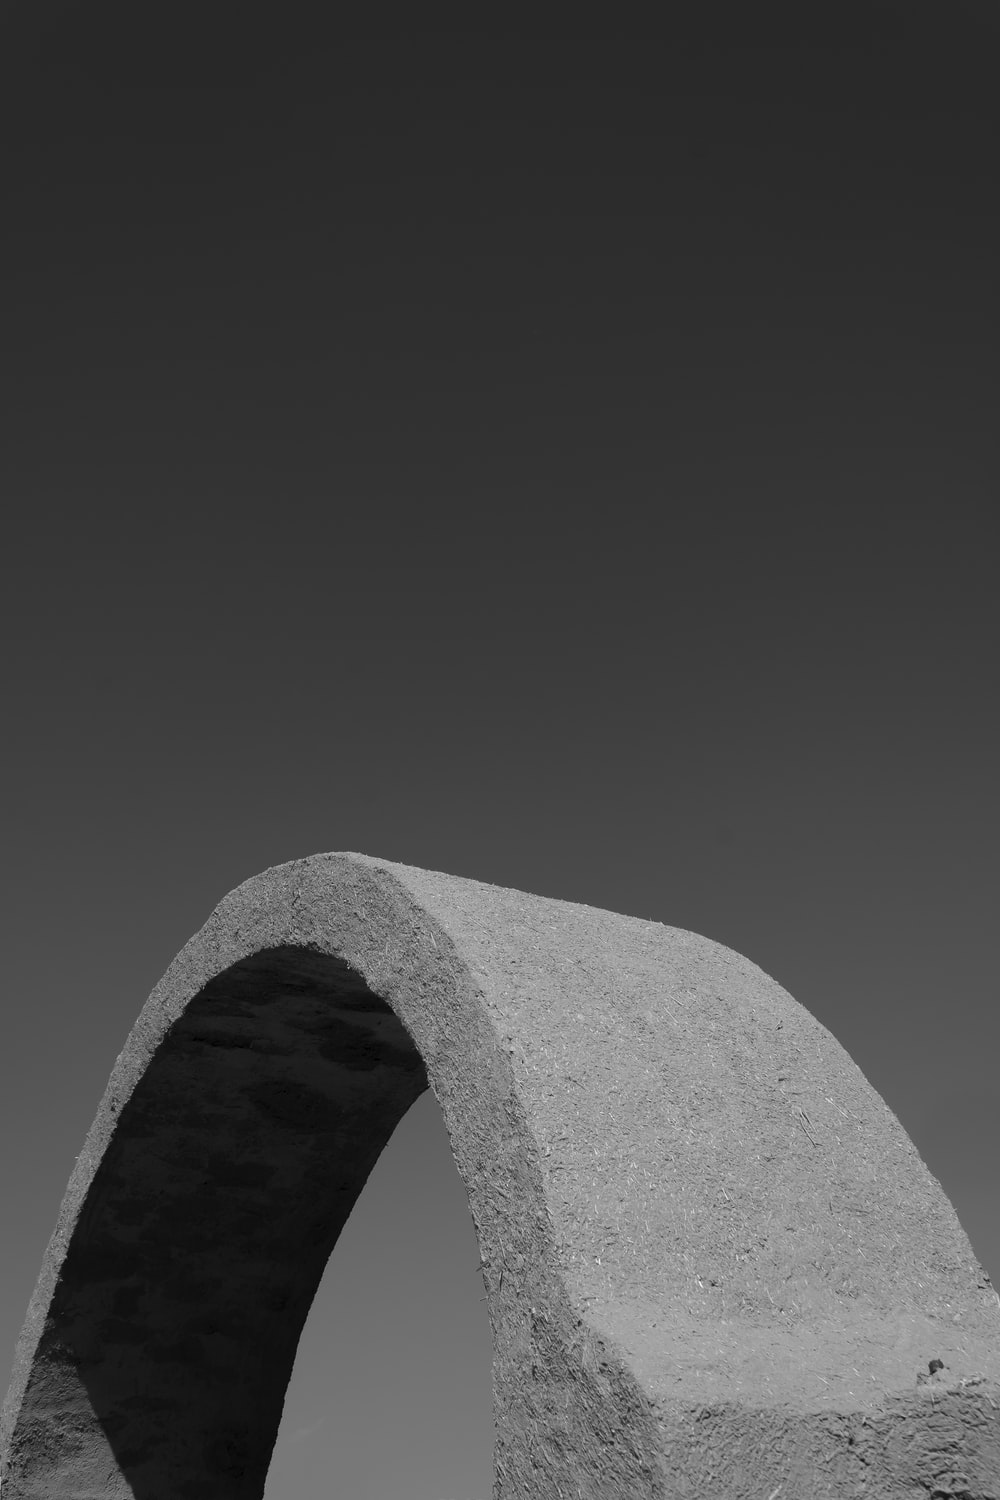 greyscale photography of dome concrete